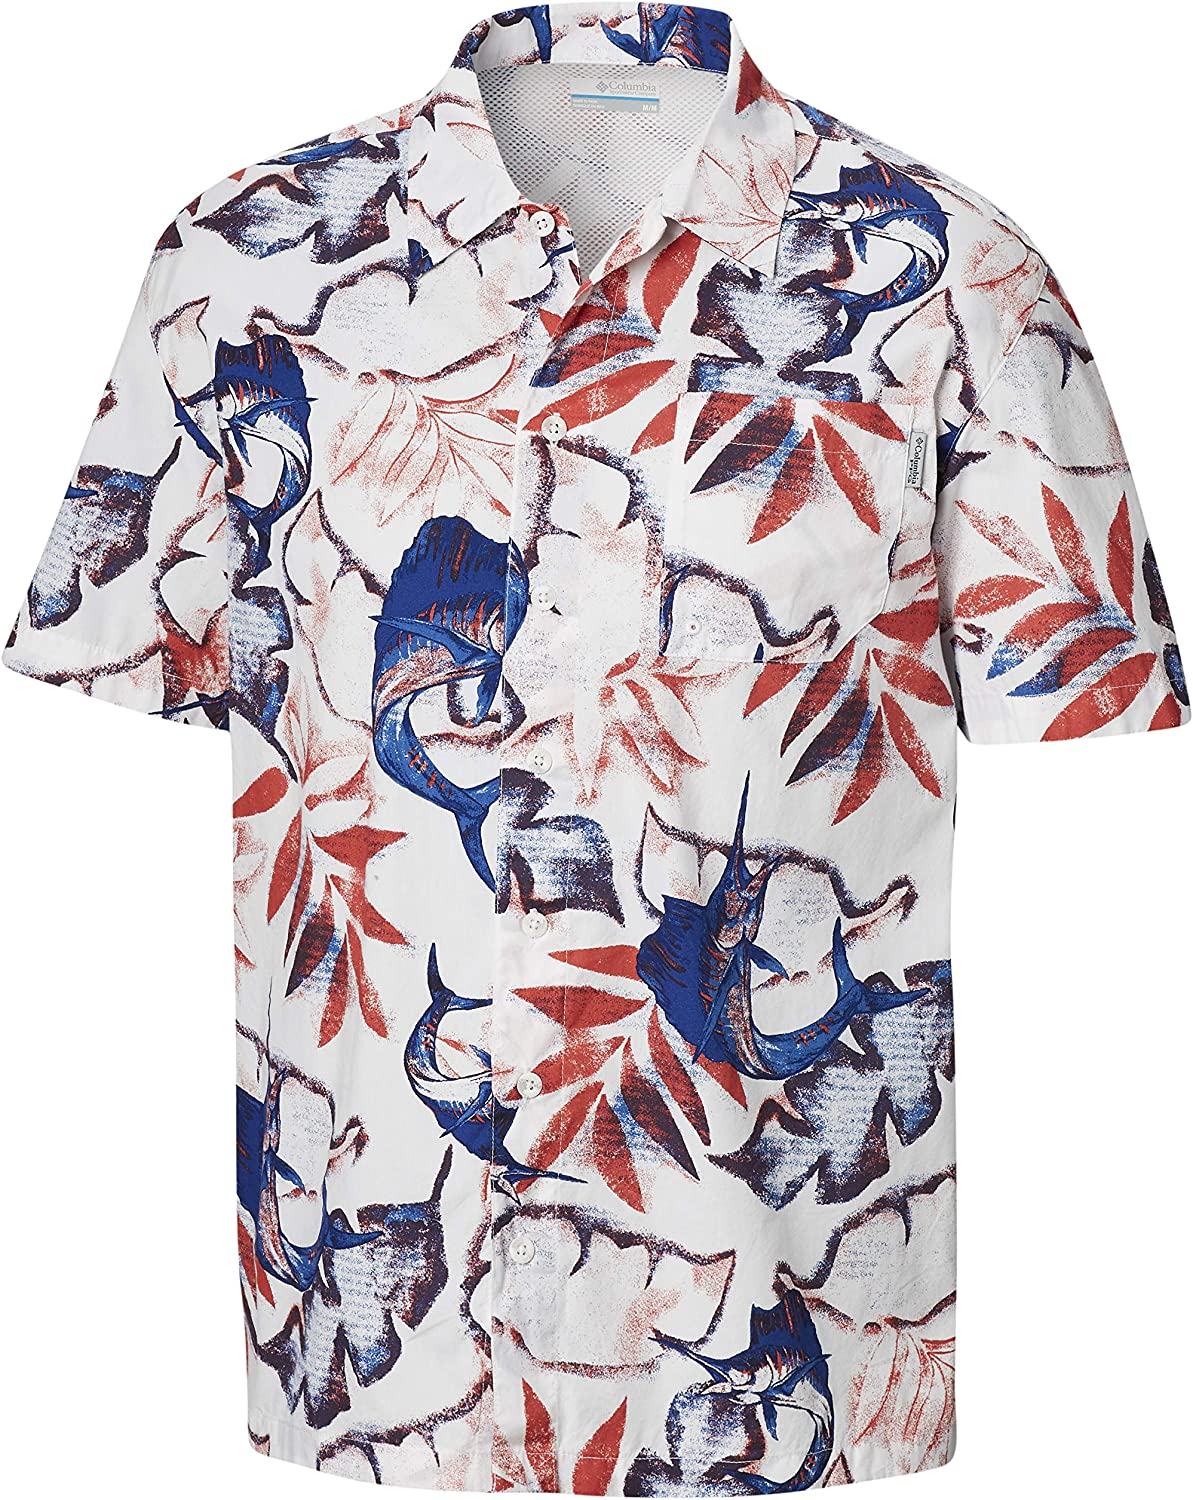 Columbia PFG Men's Trollers Best Short Sleeve Shirt, Breathable, Button-Up